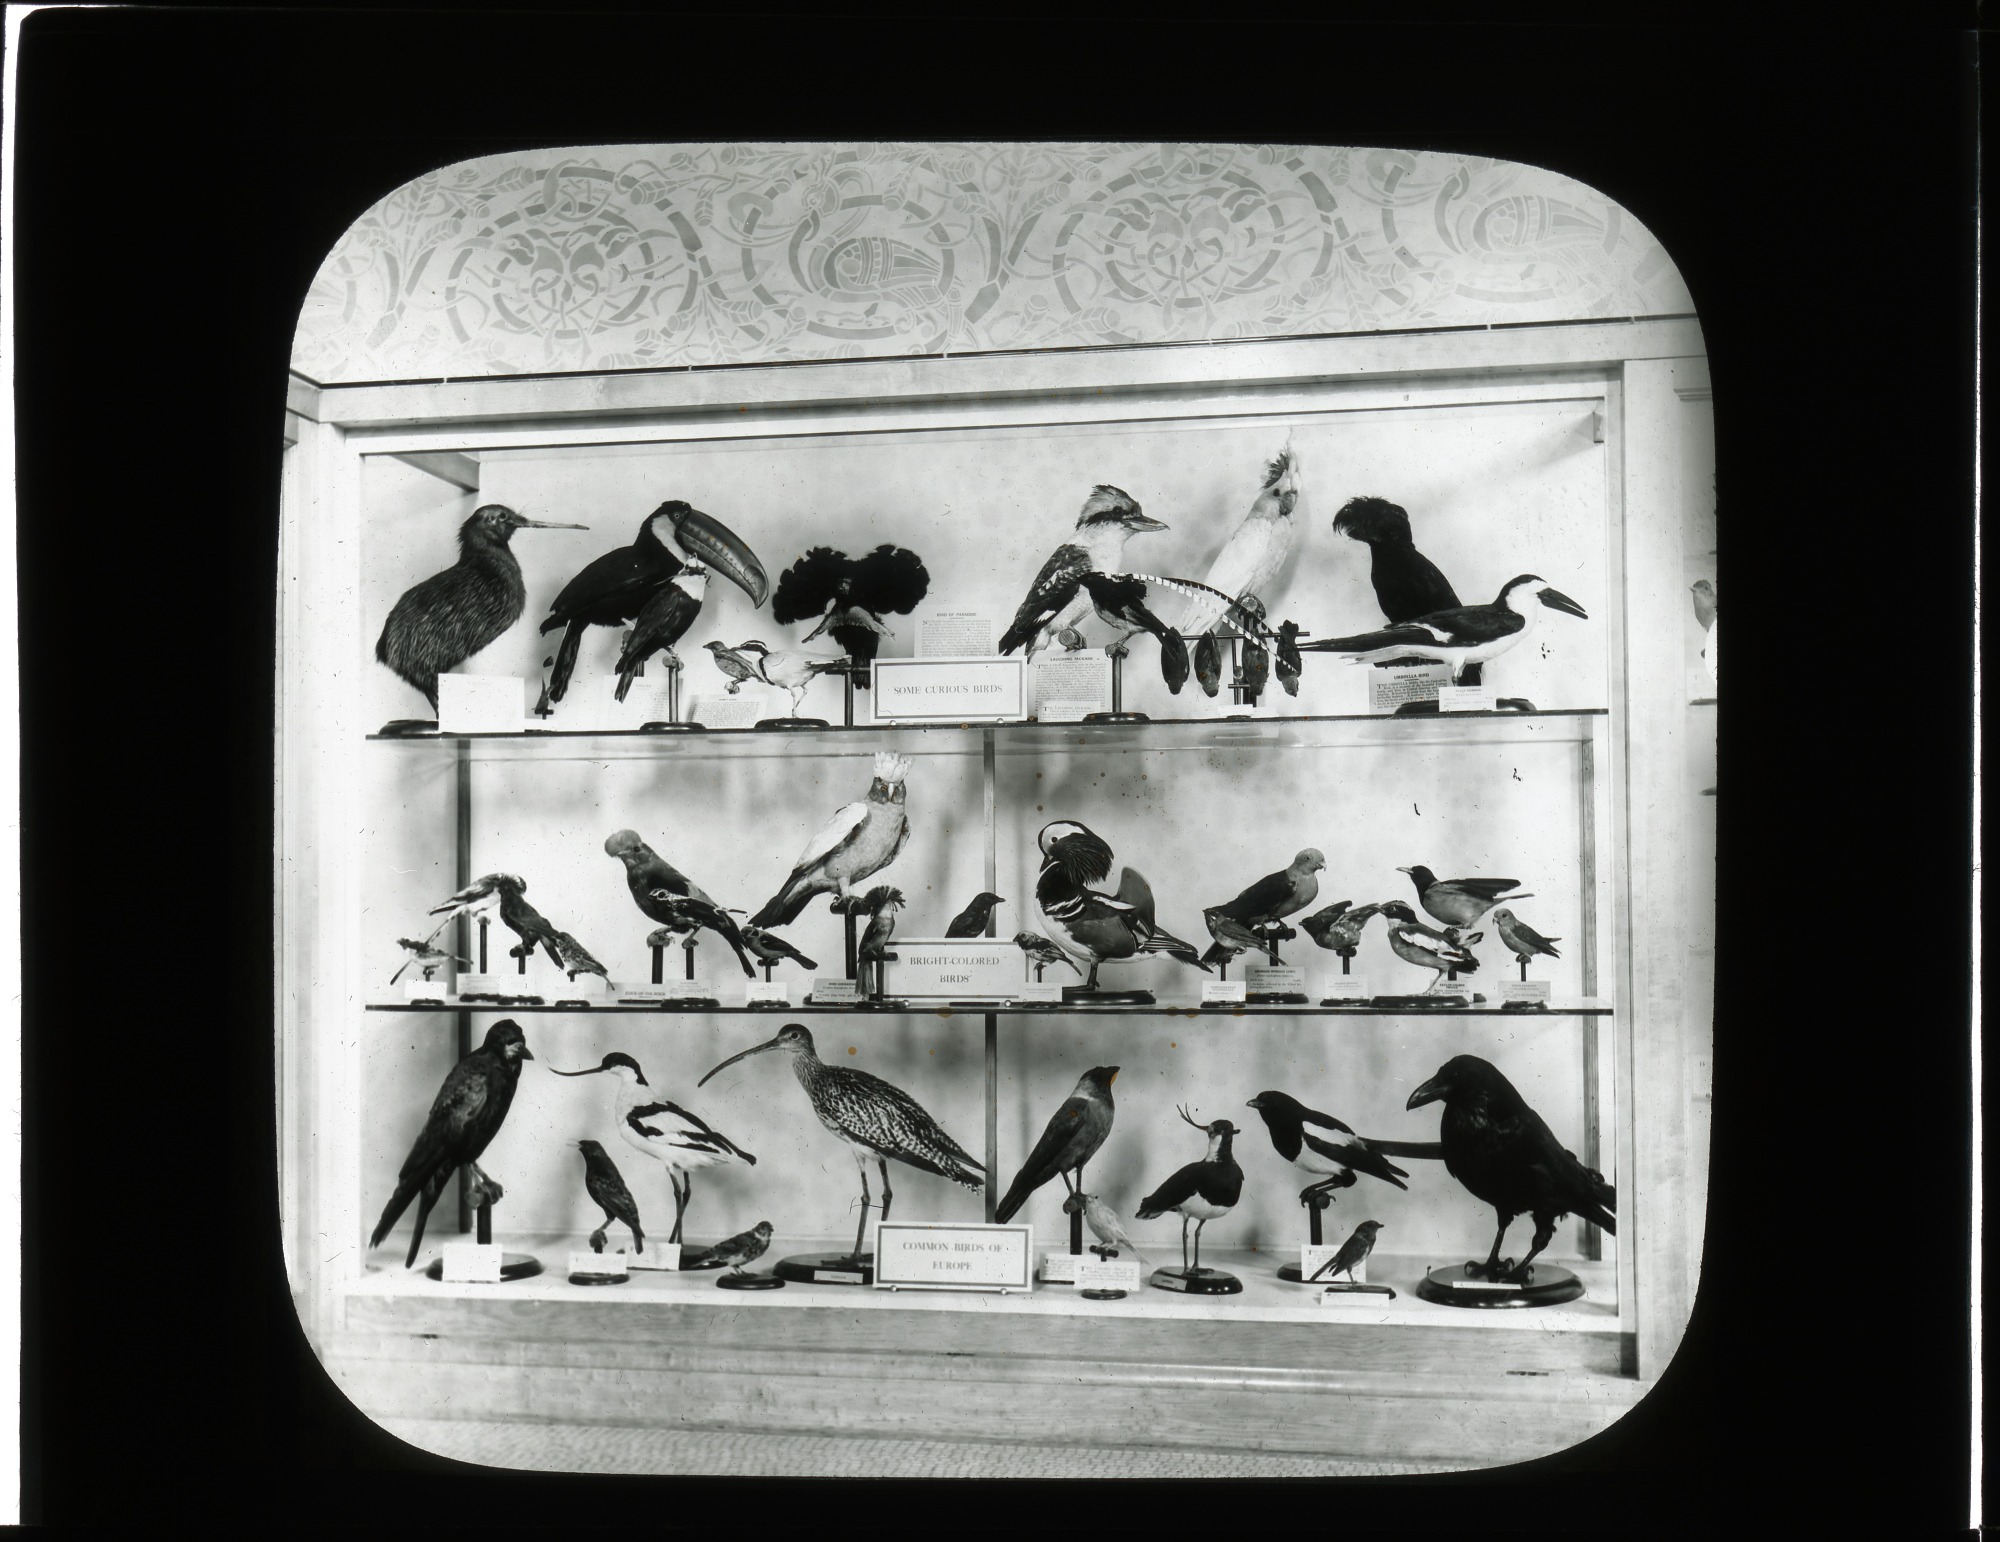 Exhibit Case Showcasing Birds in the Smithsonian Institution Building, or Castle